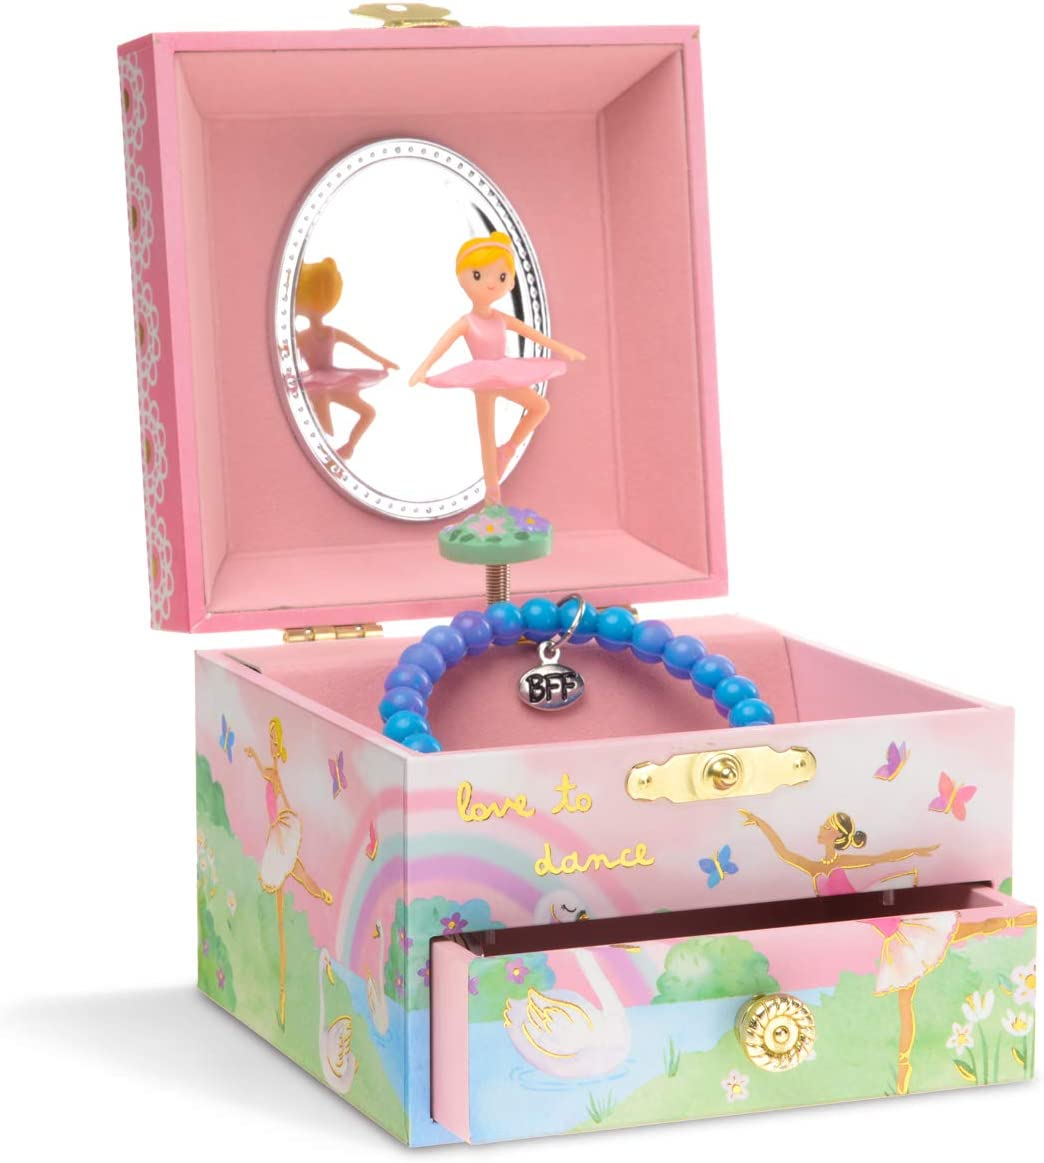 Jewelkeeper Musical Jewelry Box with Spinning Ballerina, Rainbow and Gold Foil Design, Swan Lake Tune